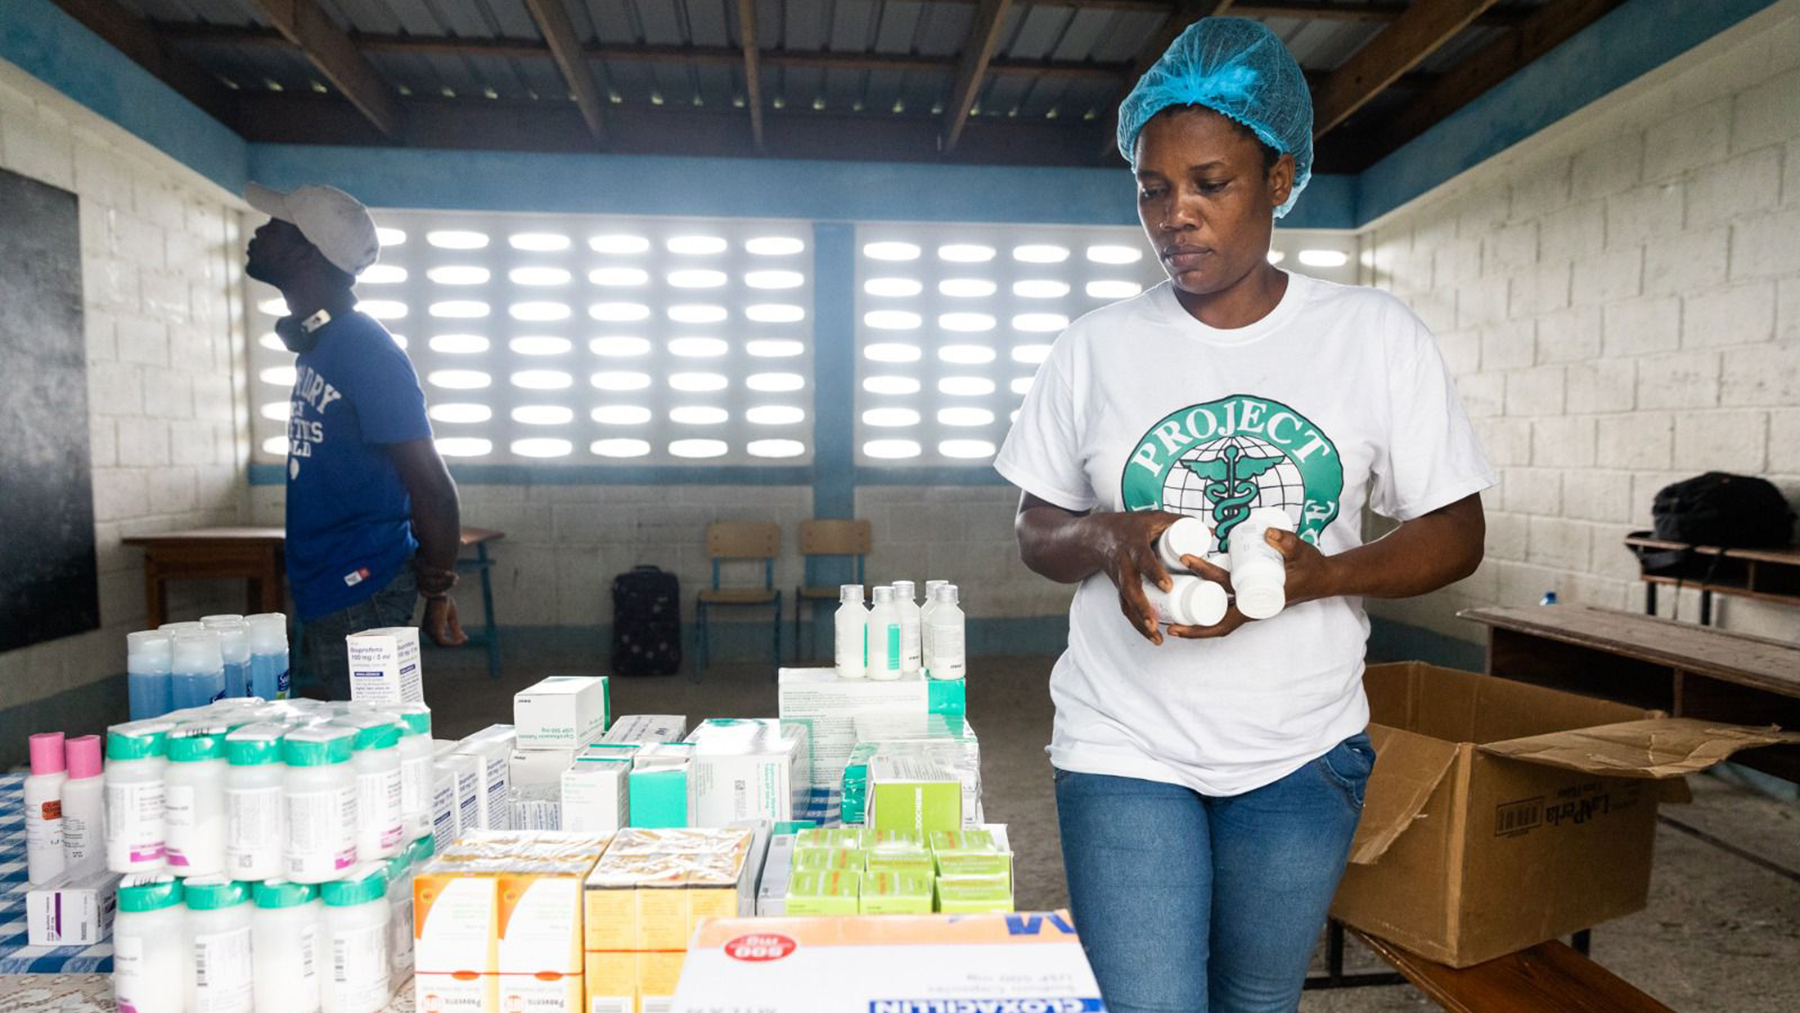 Project MediShare staff organize medical donations from Direct Relief during medical outreach to communities in Haiti recovering from the 7.2-magnitude earthquake that occurred last month. (Project MediShare photo)